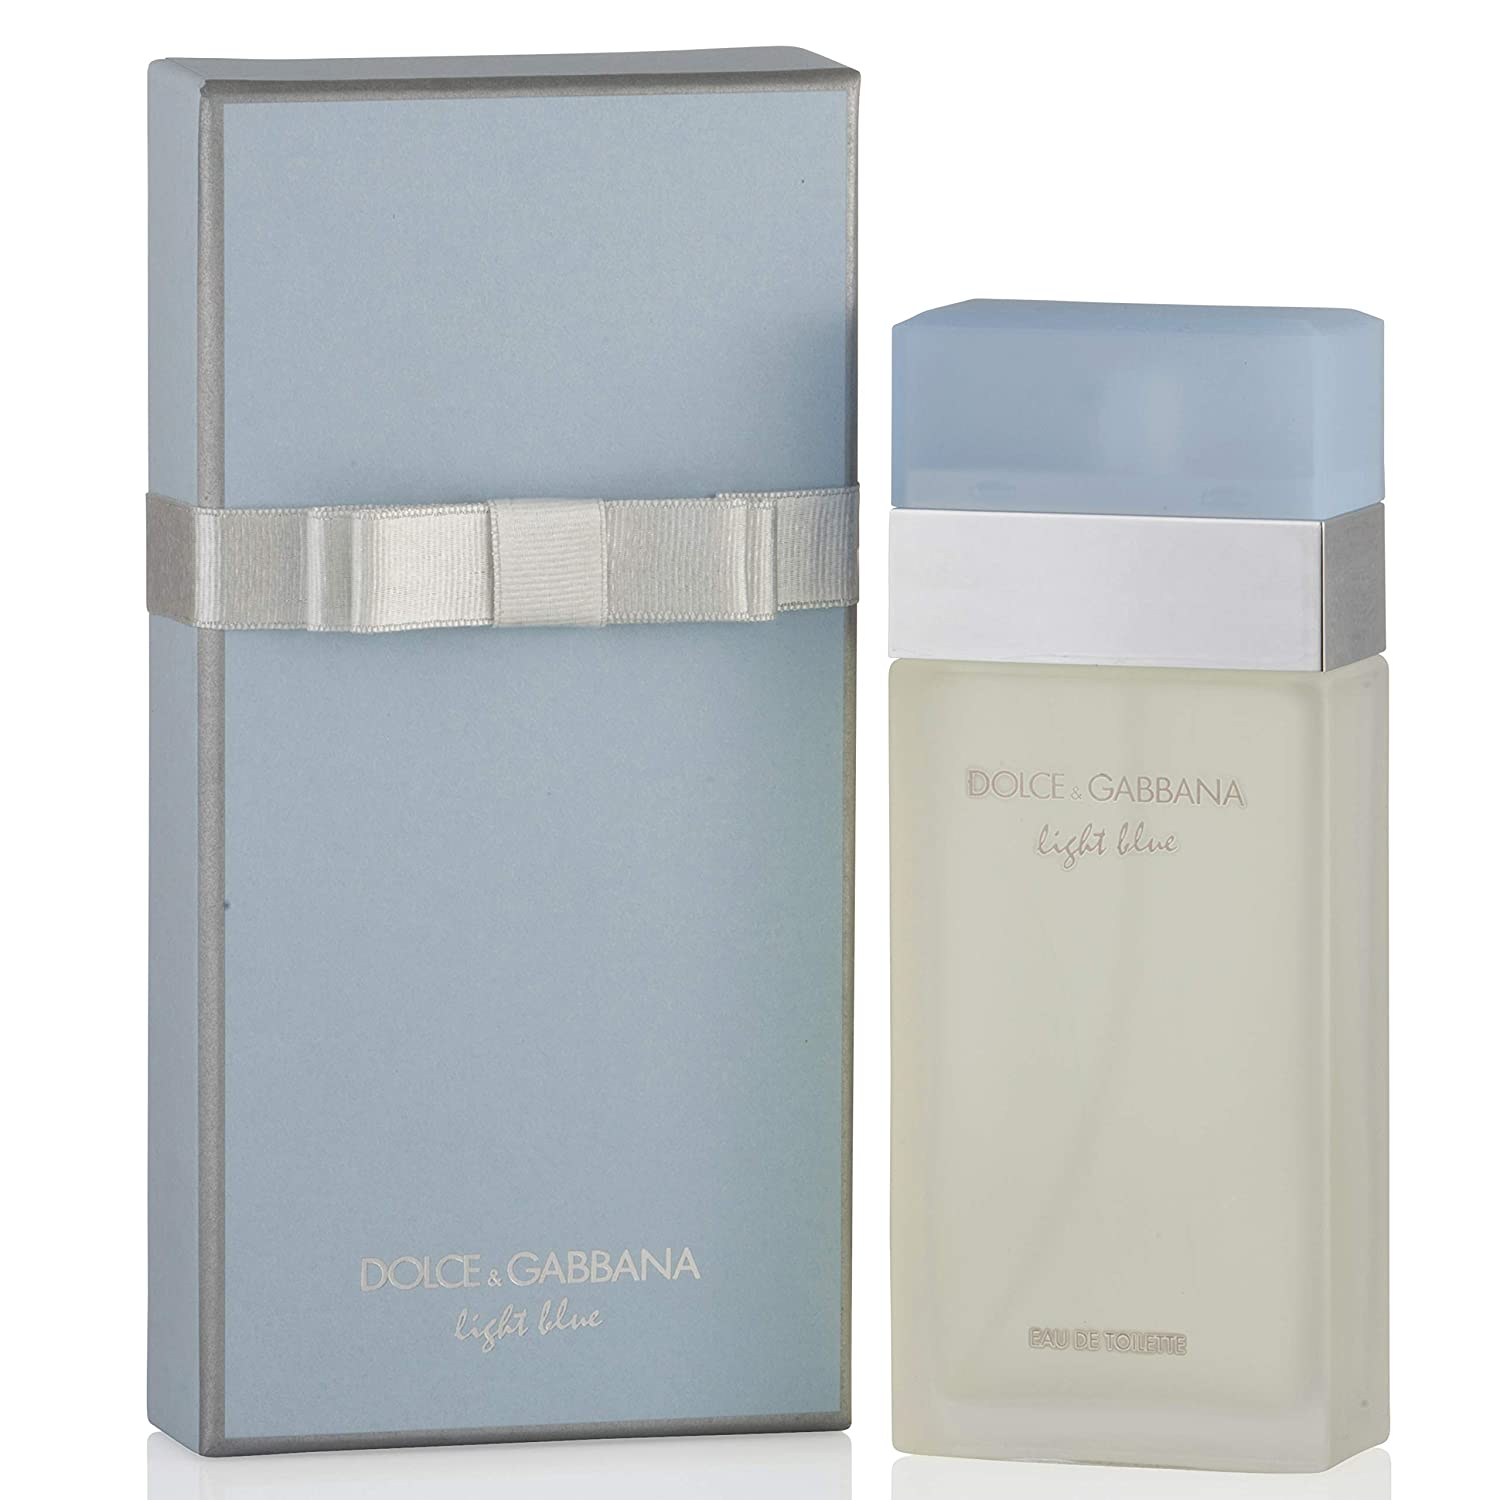 6a1e7ccbf3 Amazon.com : D & G Light Blue By Dolce & Gabbana For Women. Eau De Toilette  Spray 3.3 Ounces : Dolce And Gabbana Light Blue : Beauty